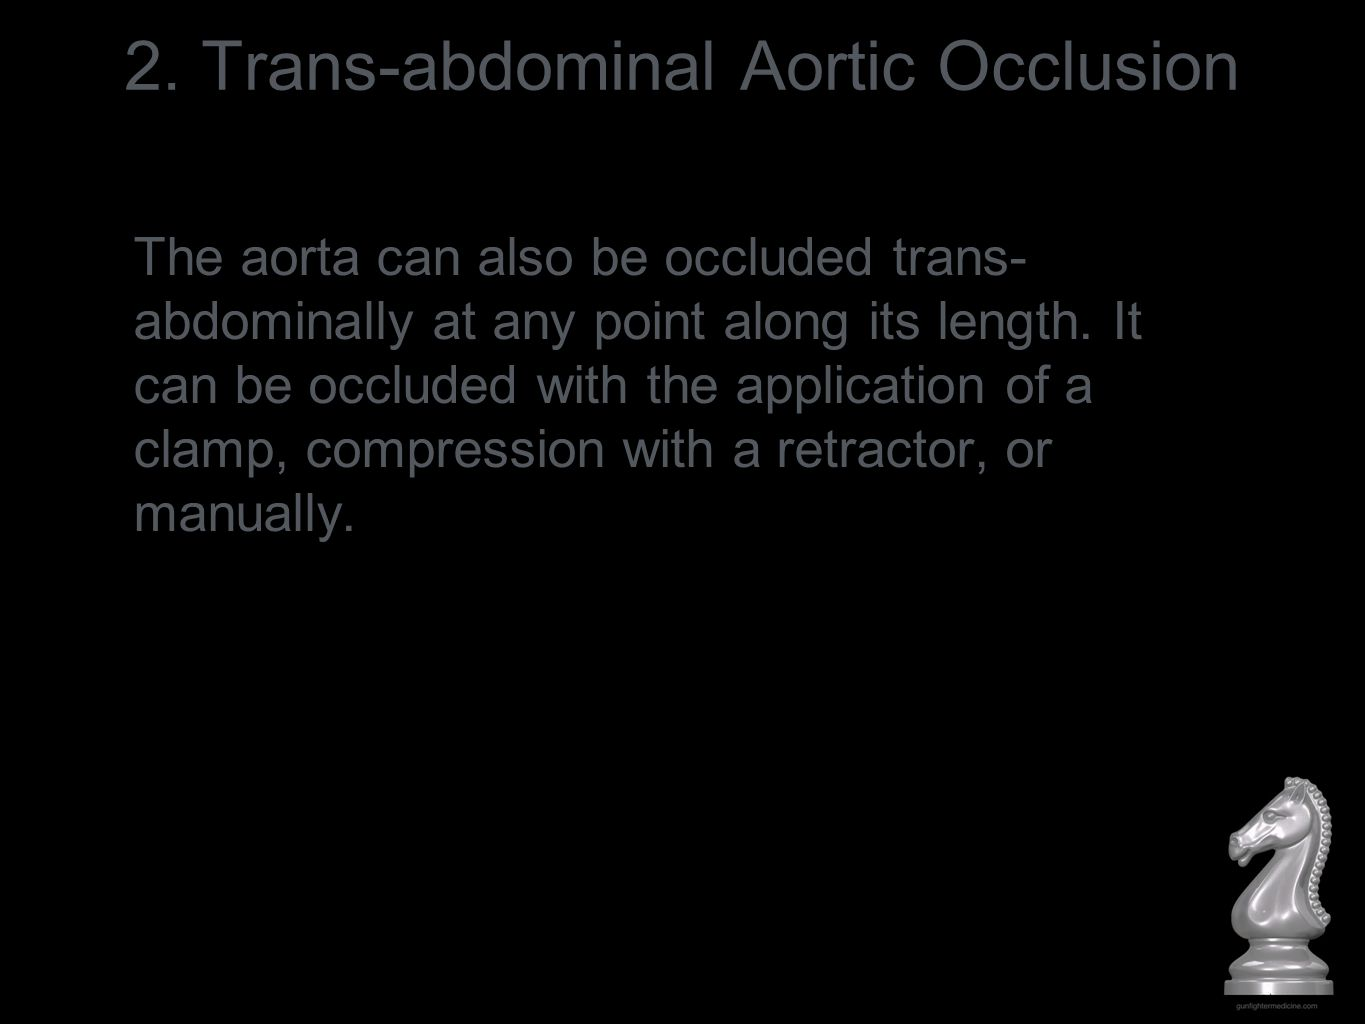 2. Trans-abdominal Aortic Occlusion